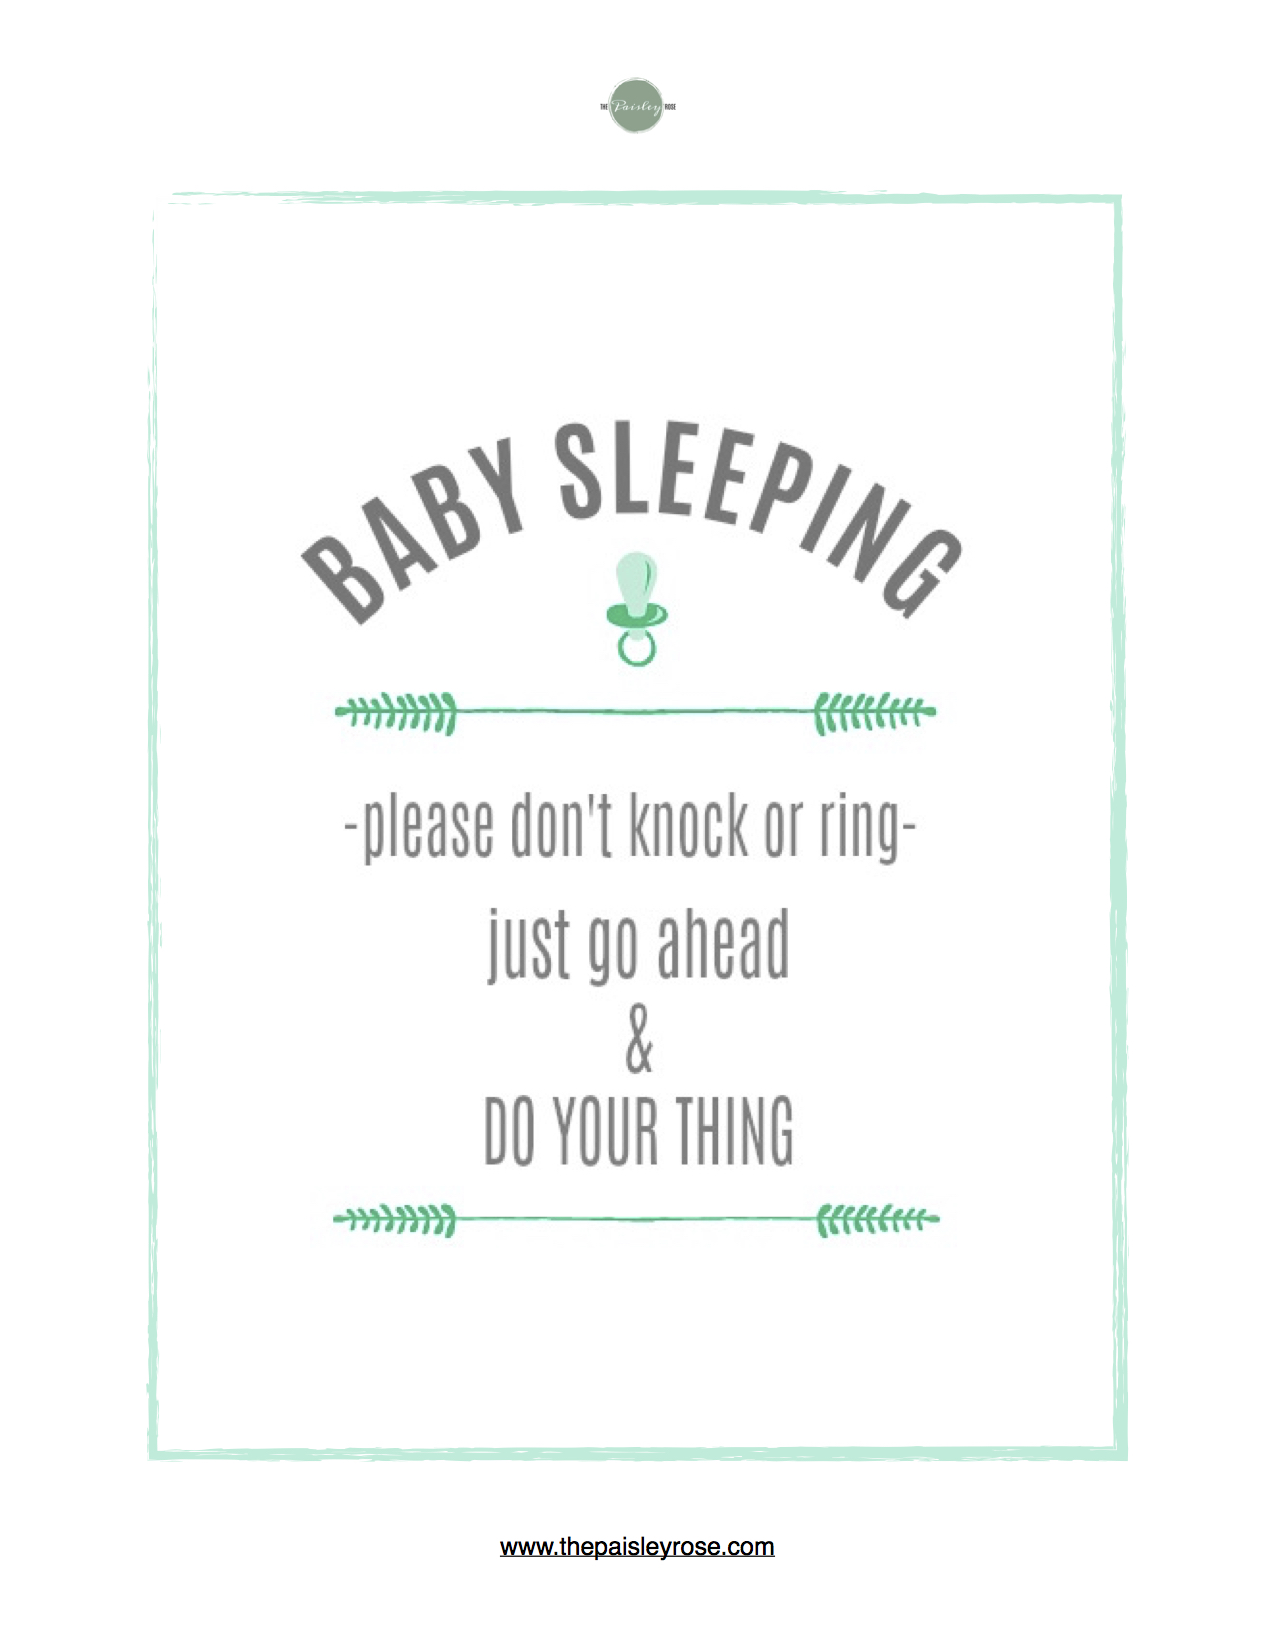 image regarding Printable Baby Sleeping Sign Front Door named The Nap-season Curse - The Paisley Rose